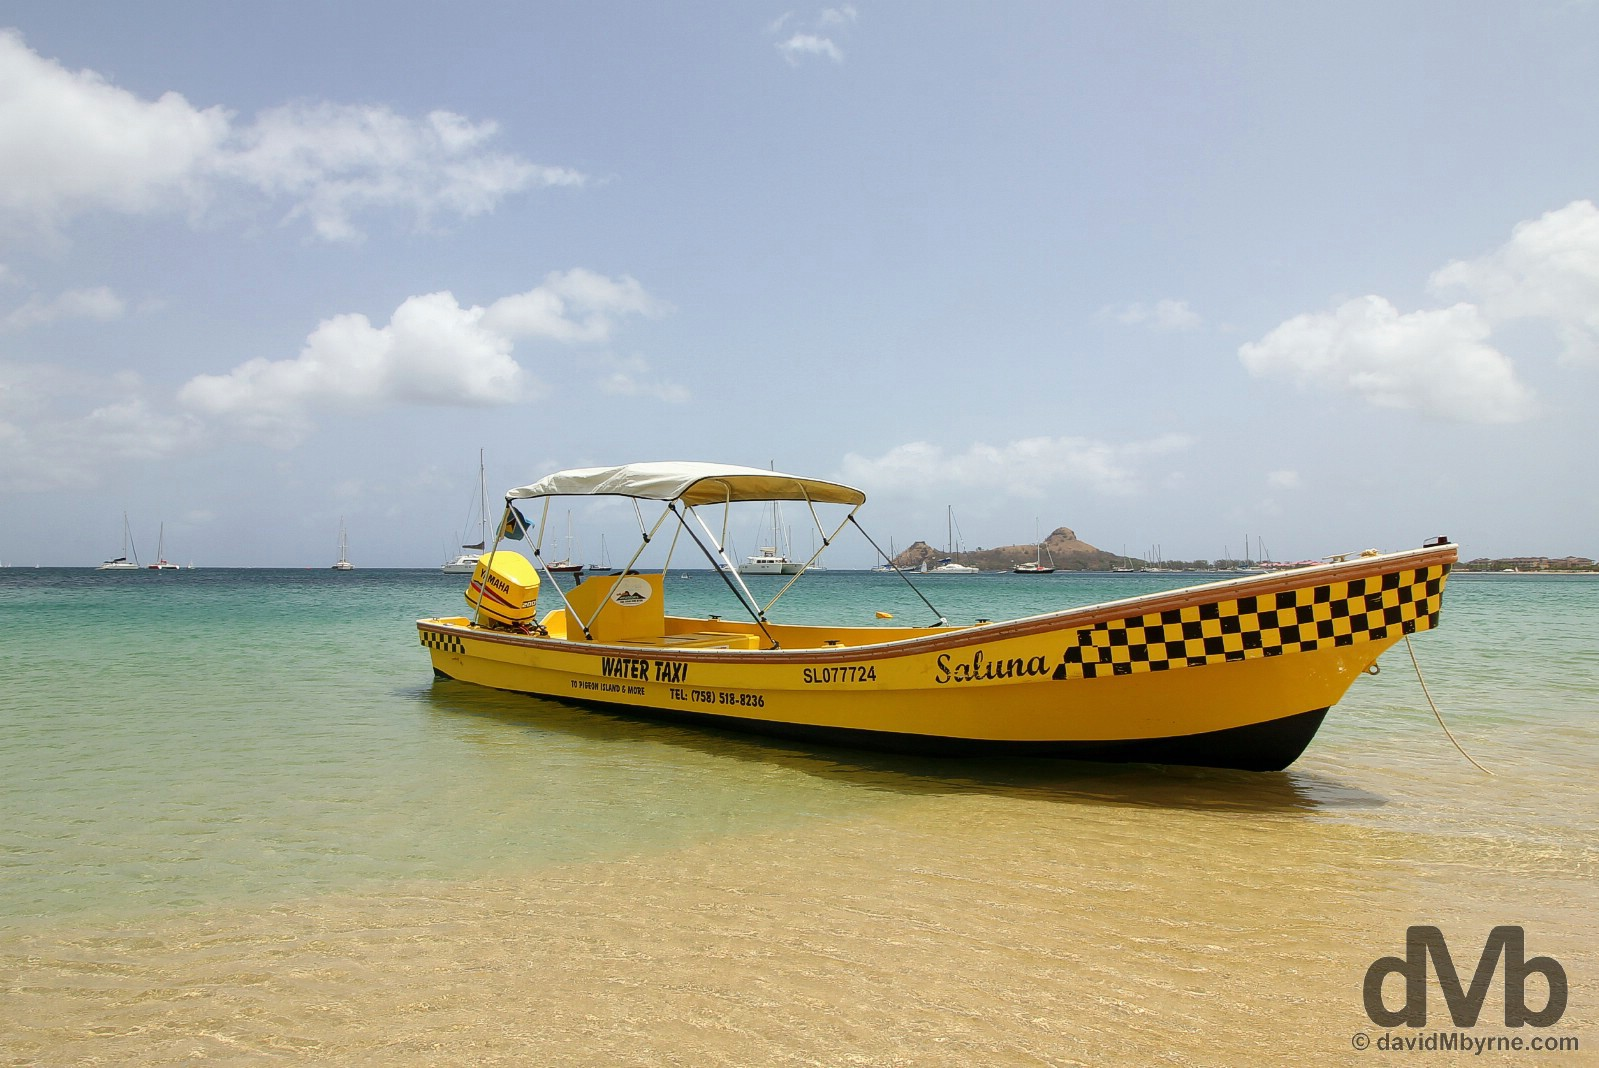 A water taxi on Reduit Beach, Rodney Bay, St. Lucia, Lesser Antilles. June 14, 2015.